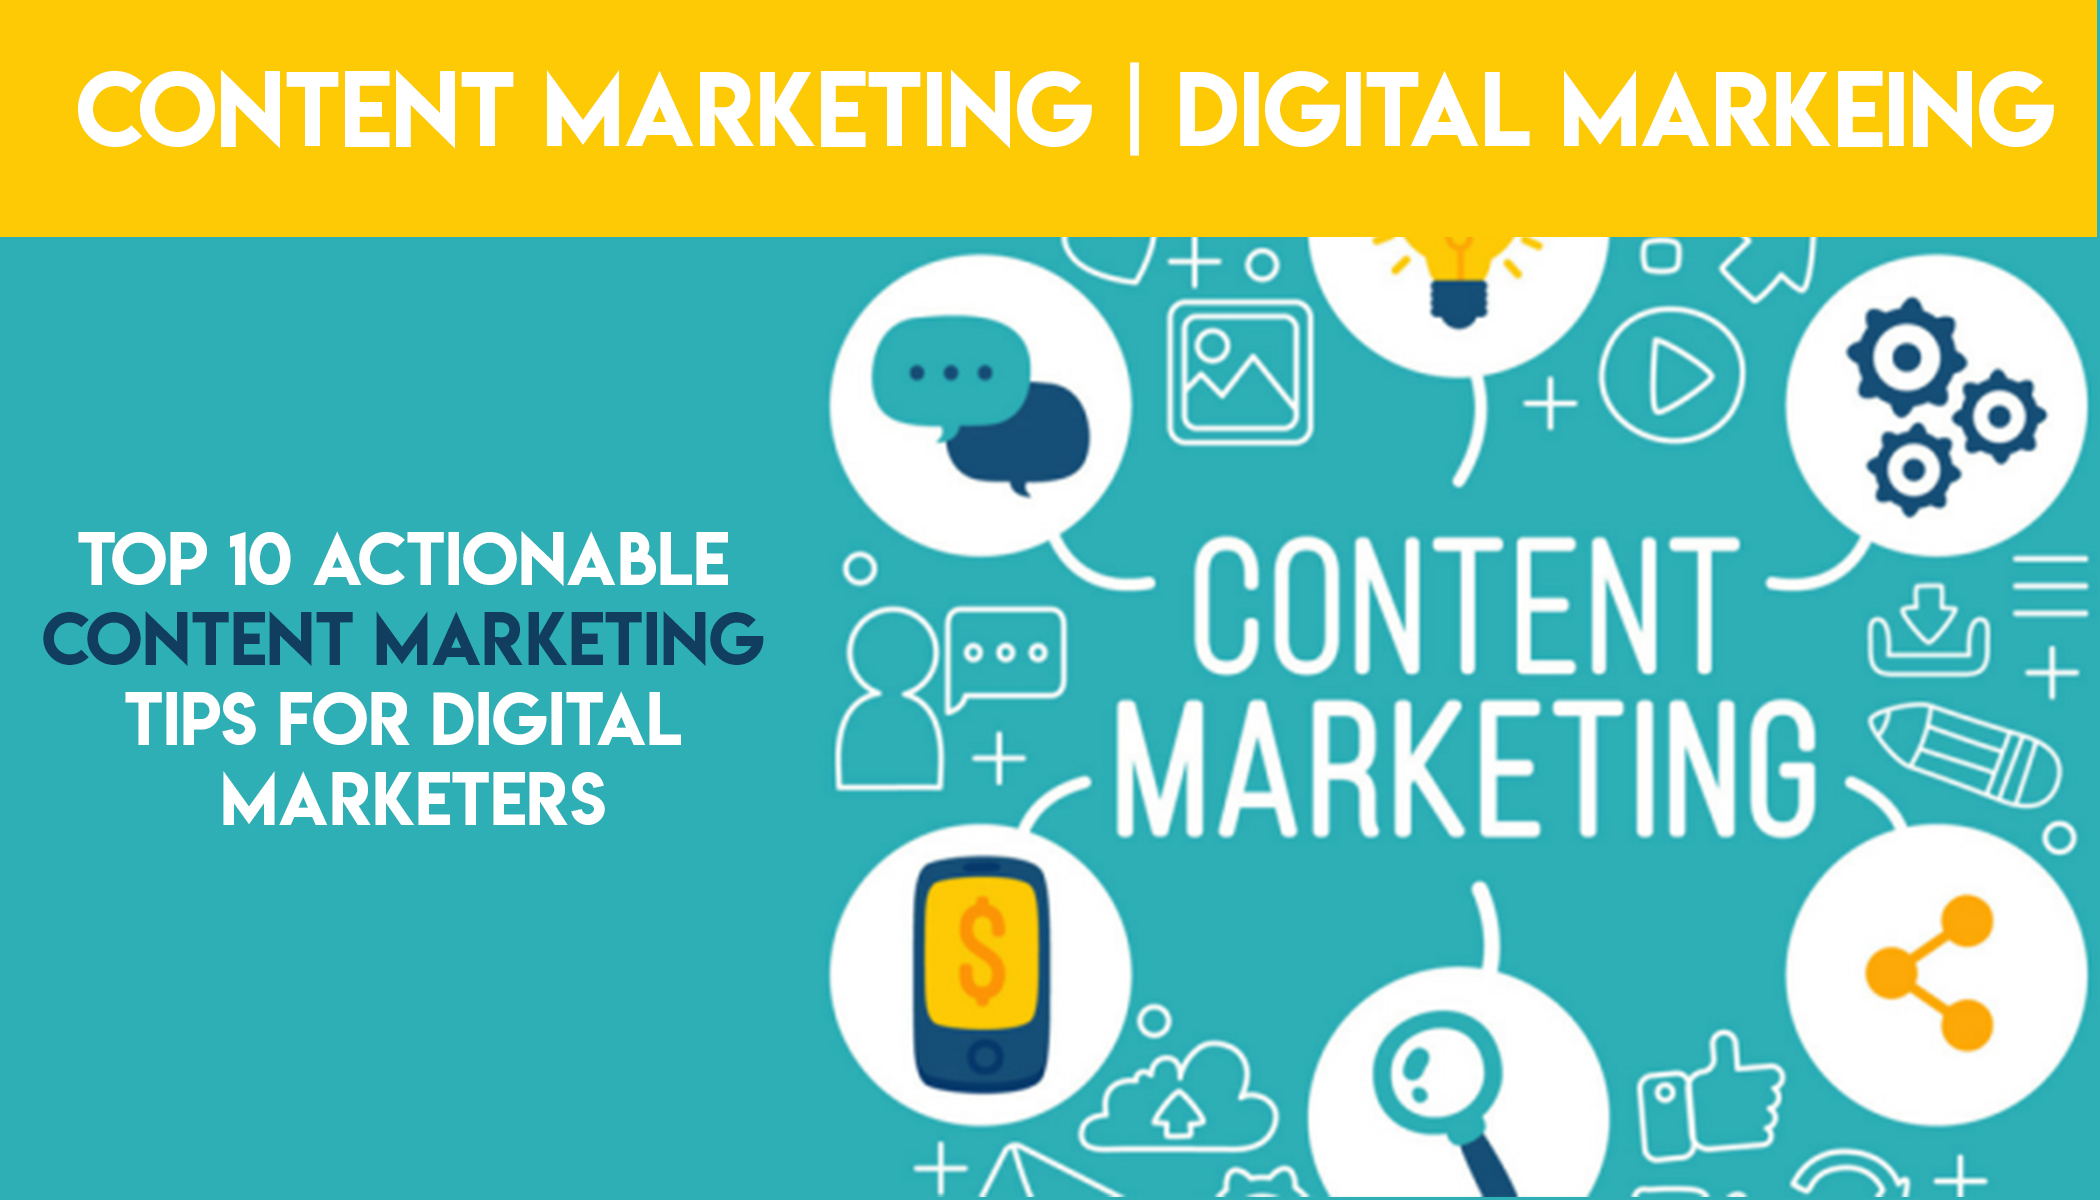 Content Marketing is the process of creating and promoting content on a consistent basis in order to reach a business objective